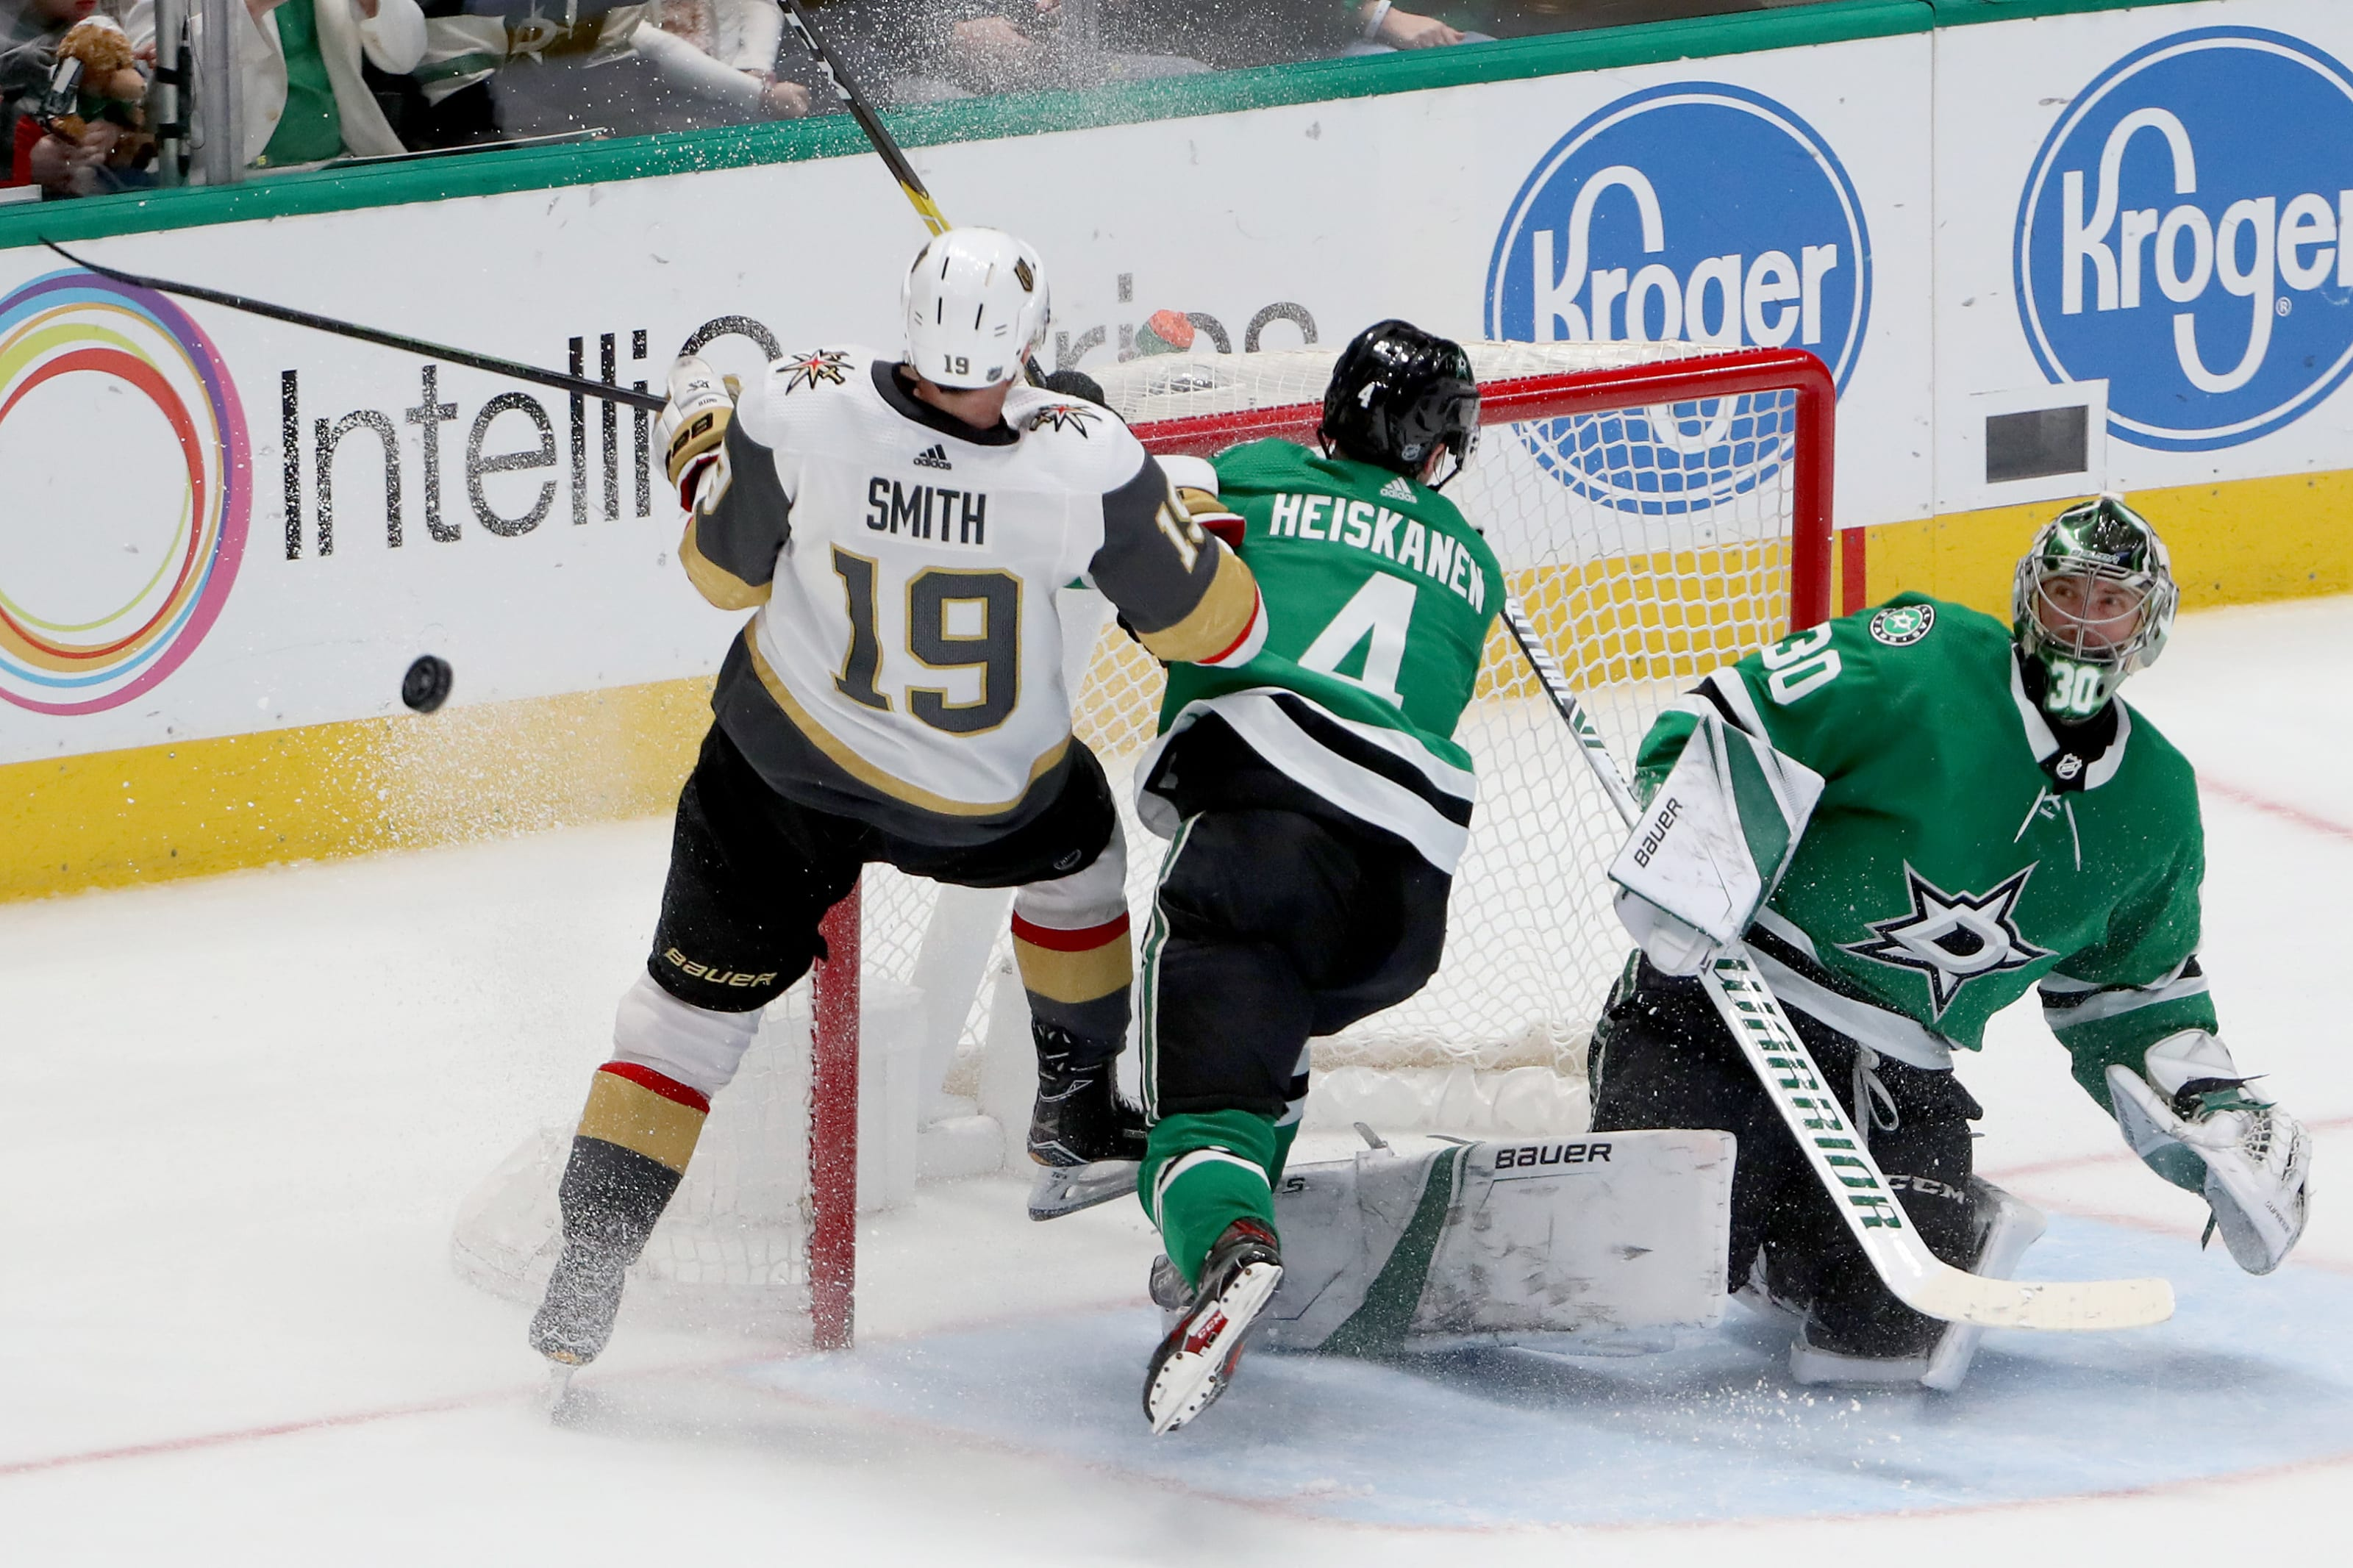 Ben Bishop #30 of the Dallas Stars blocks a shot on goal